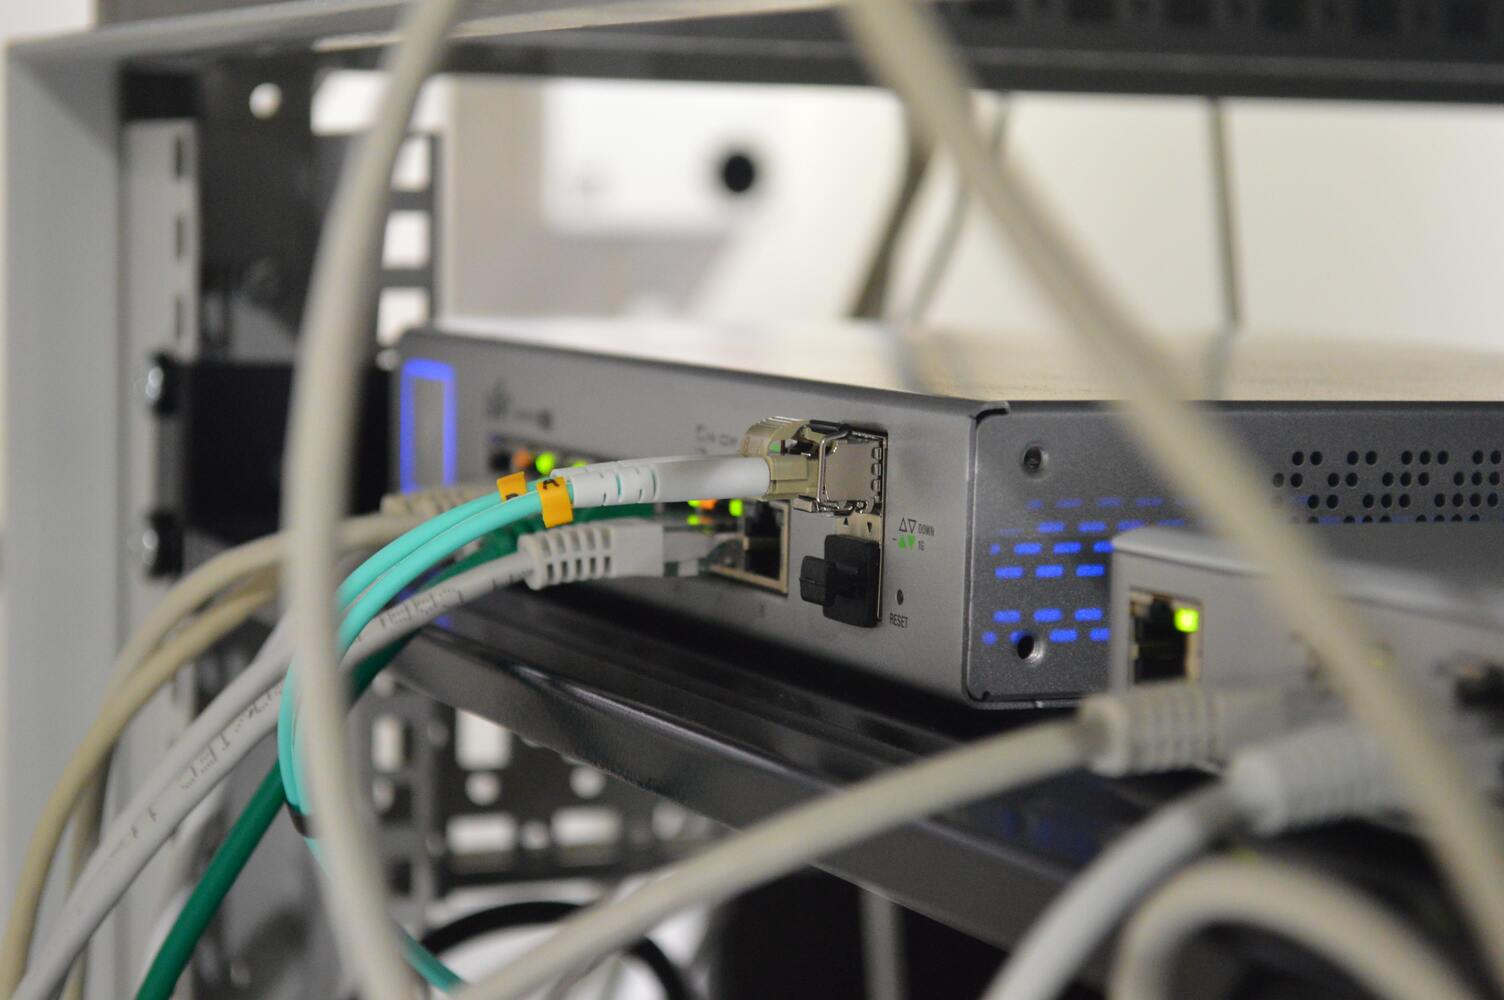 green and gray cords plugged into network engineering computer hardware